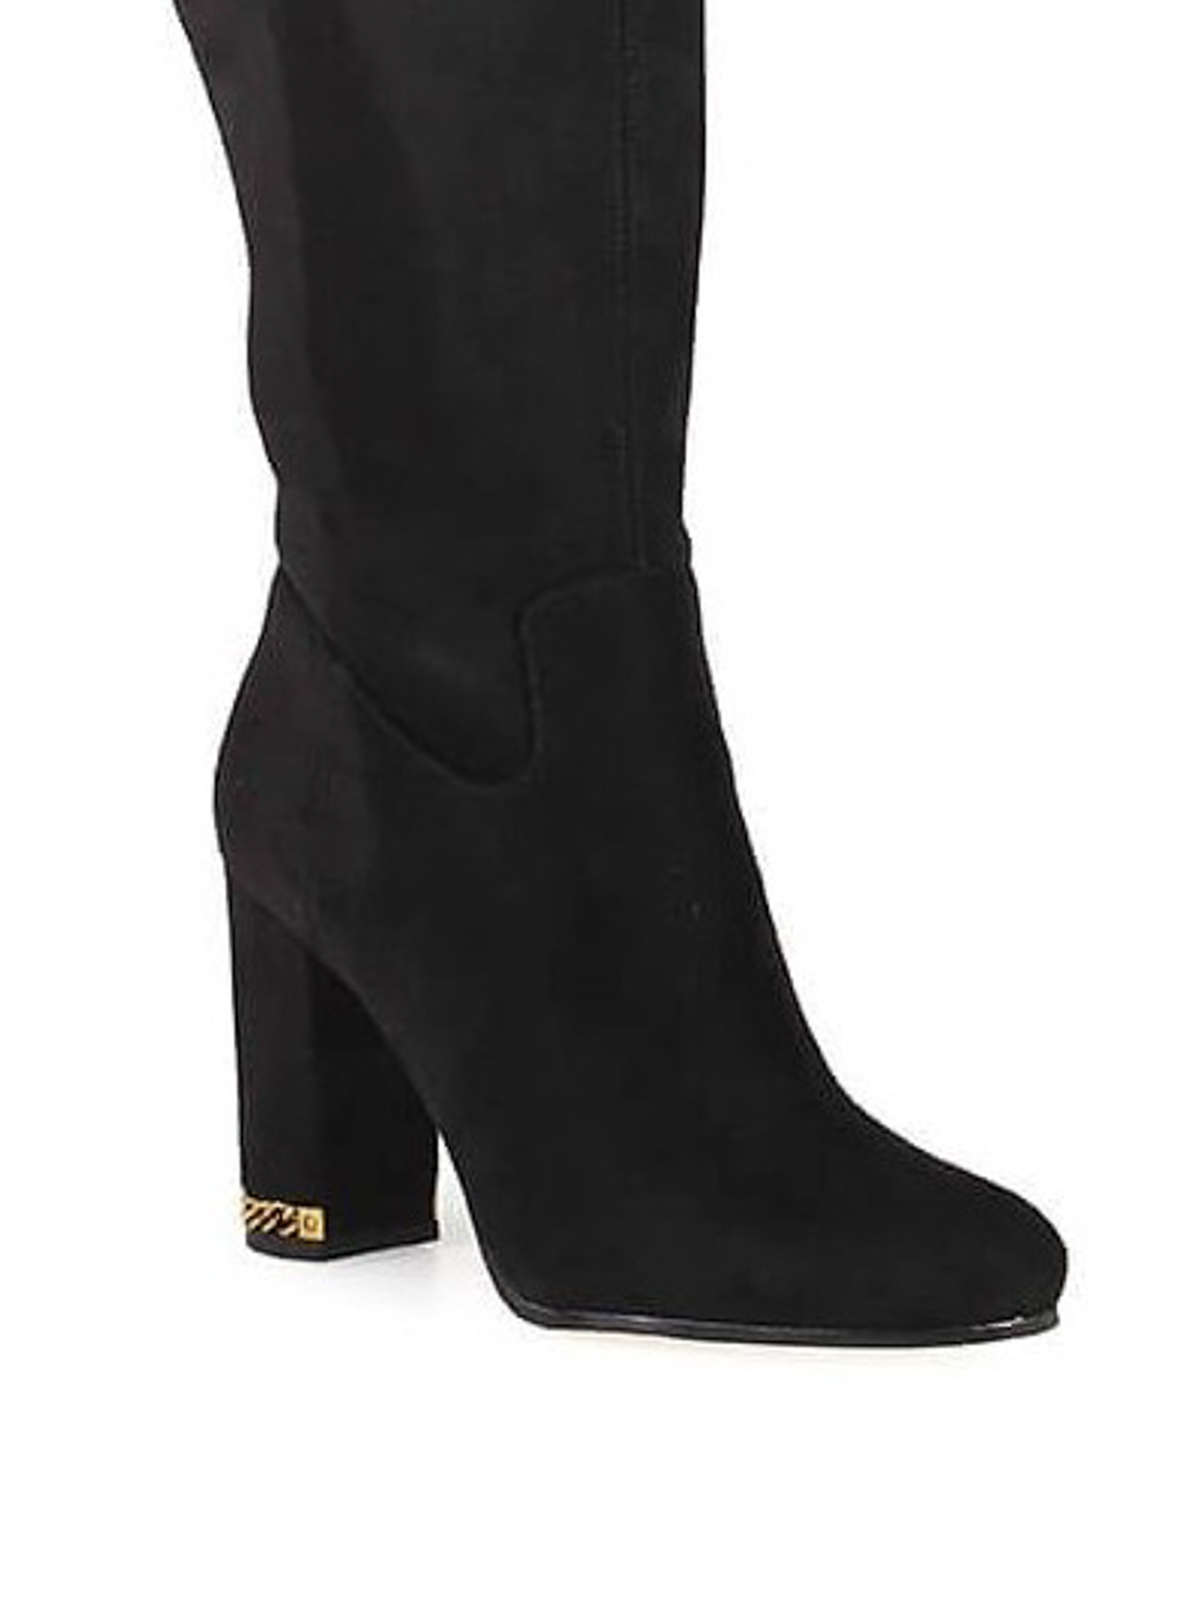 22be461f00e iKRIX MICHAEL KORS  boots - Jamie Stretch suede-like block heel boots